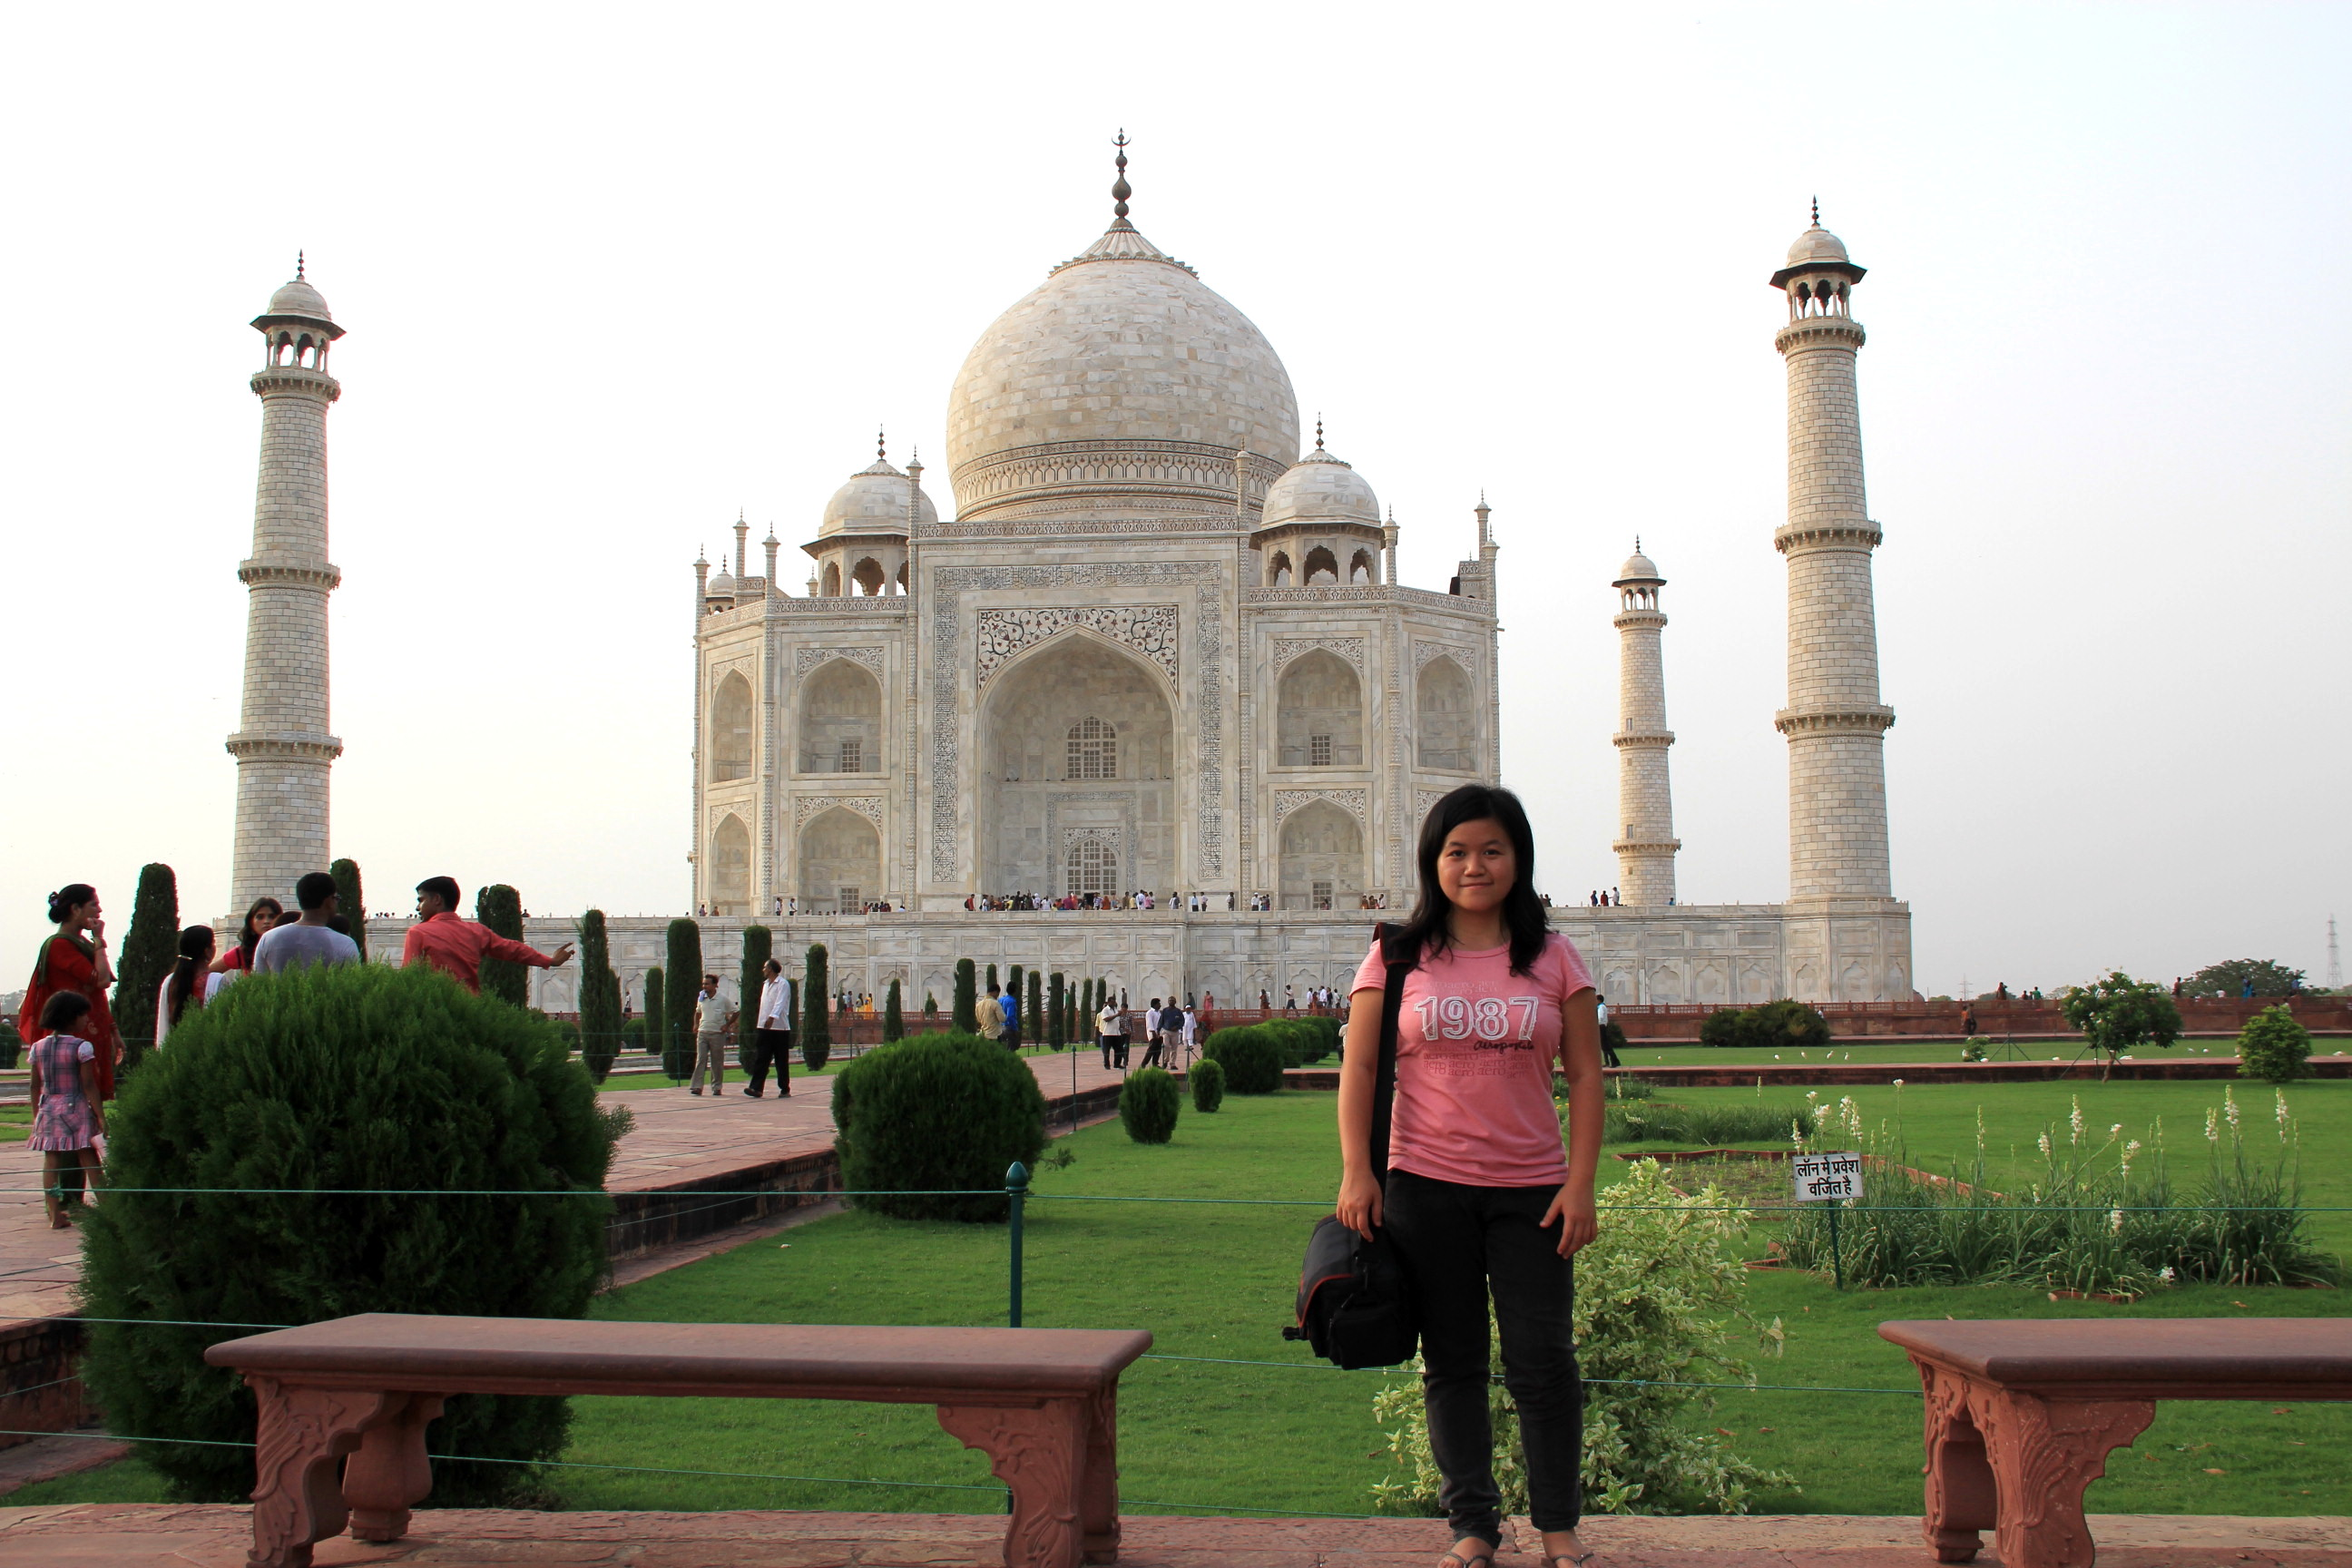 Me at Taj Mahal, Agra, India